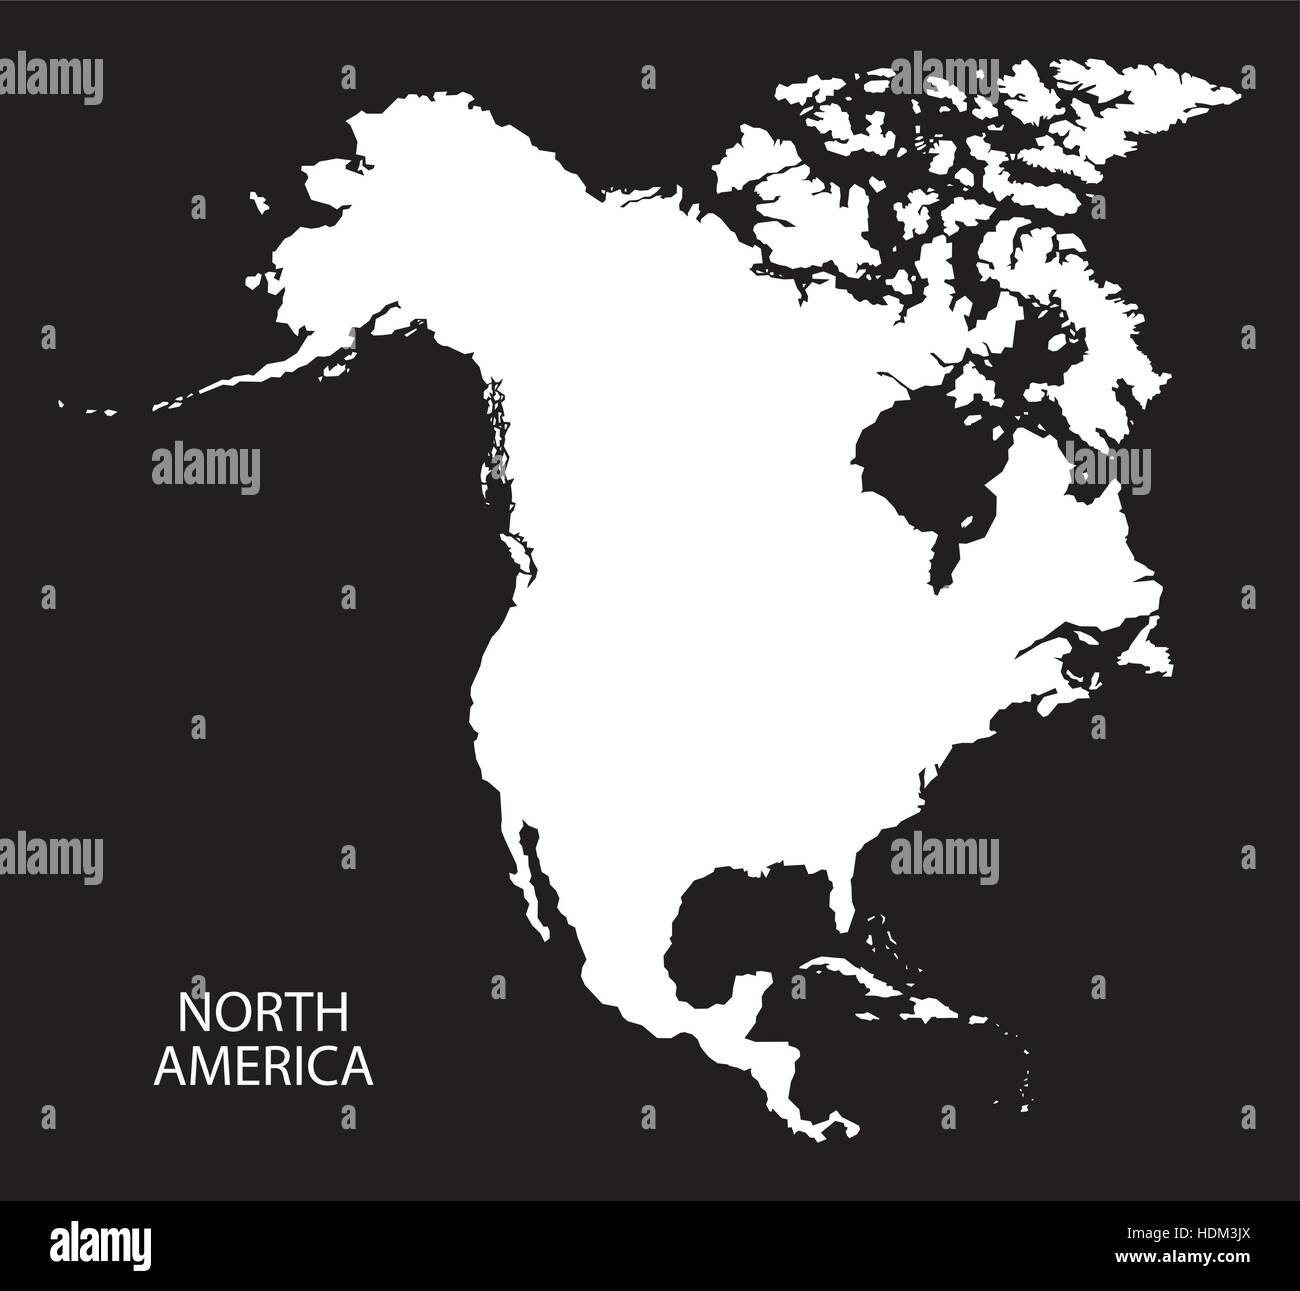 North America Map black and white illustration Stock Vector Art